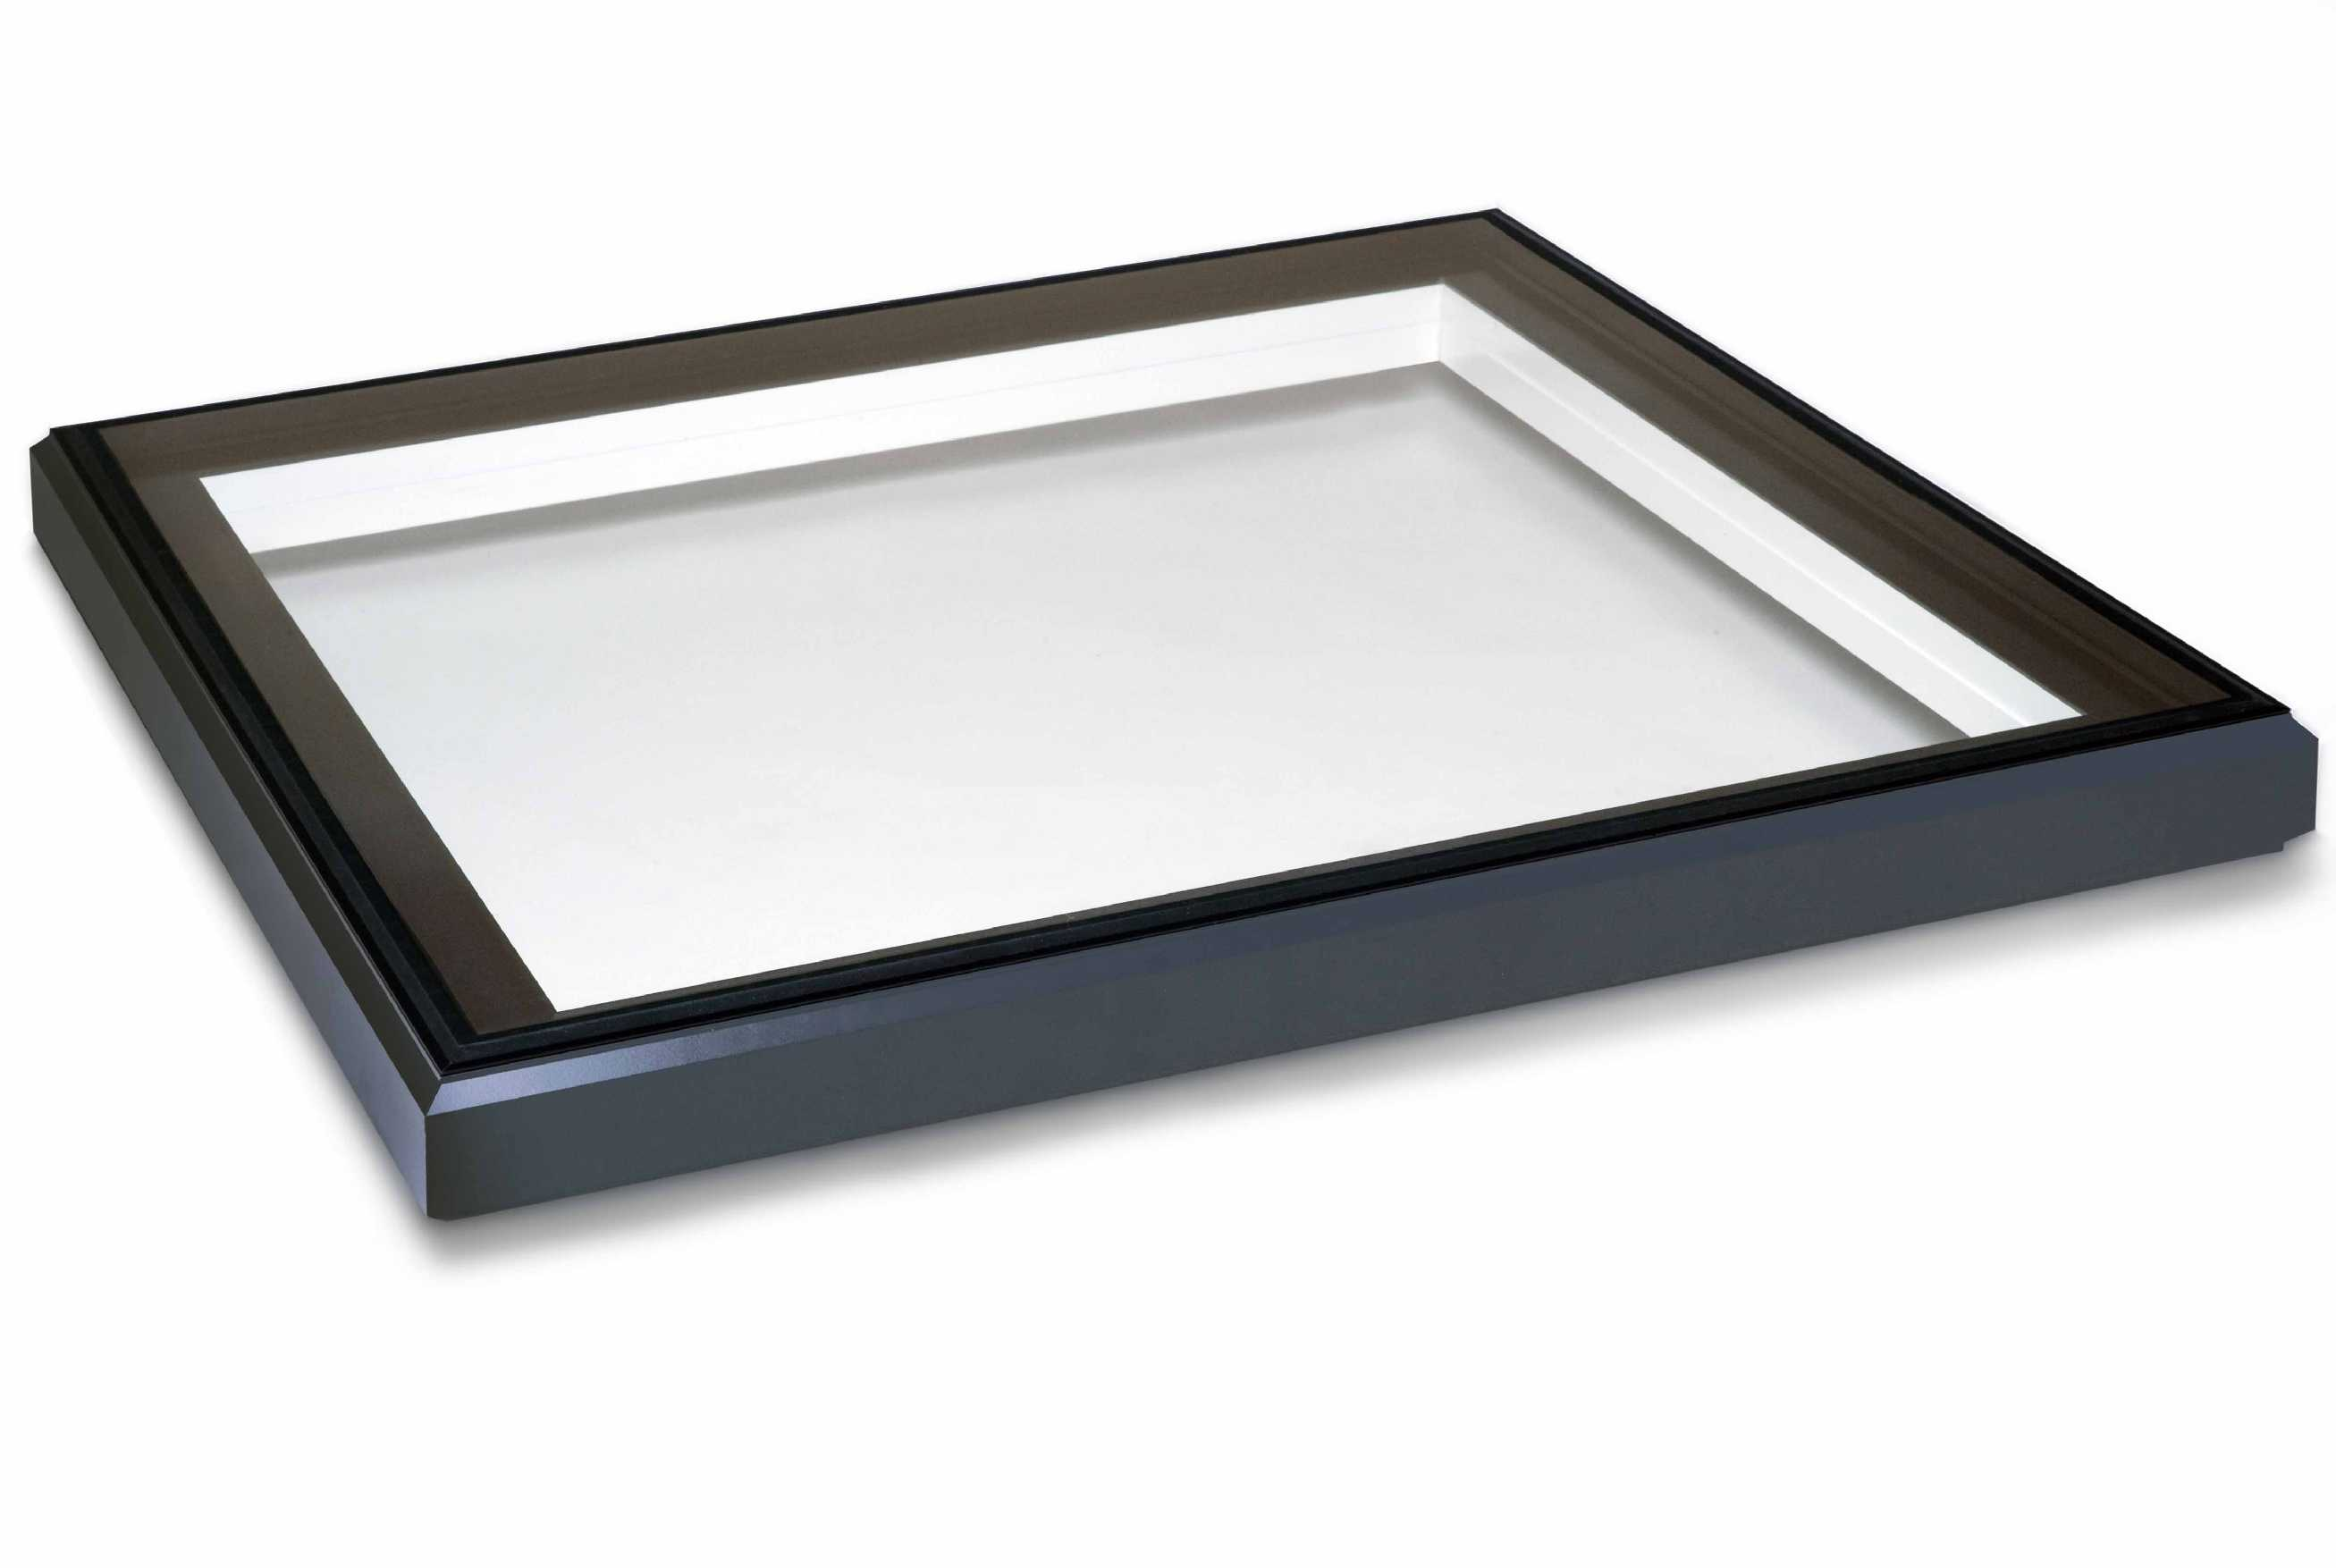 Buy EcoGard Flat Roof light, Triple Glazed, Electric Opening, 1,000mm x 1,000mm online today